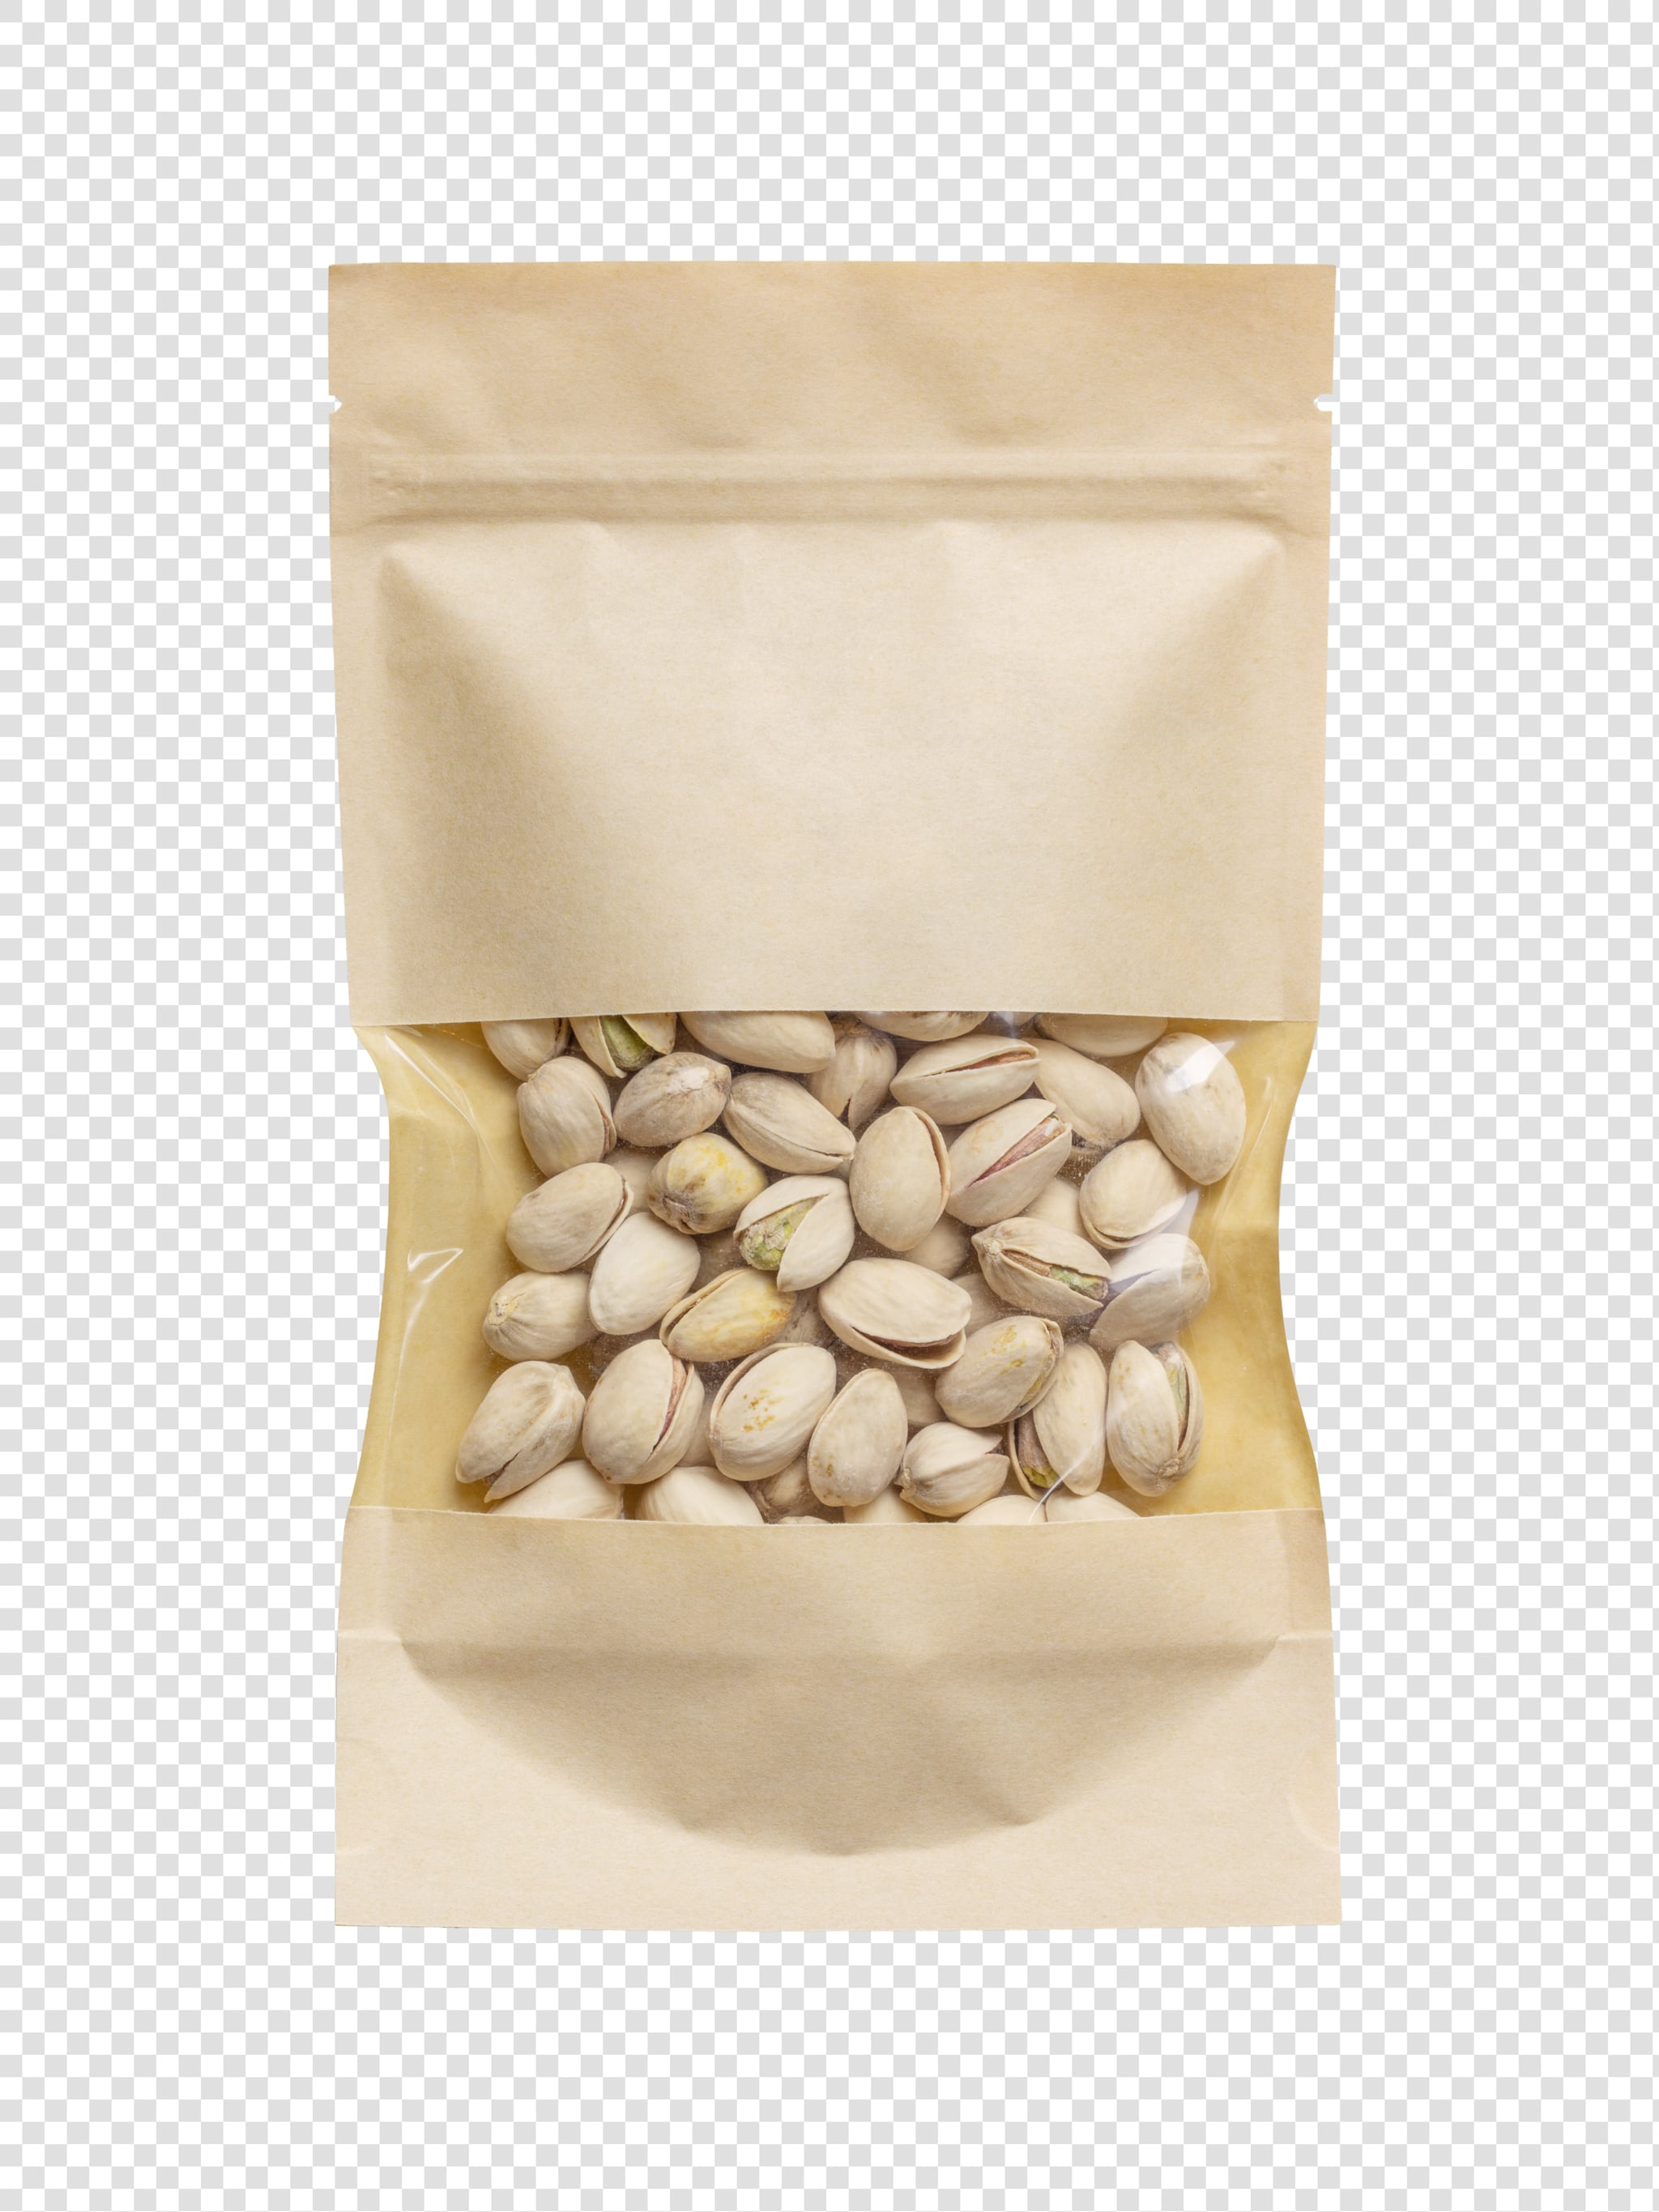 Clean Isolated PSD image of Package of pistachios on transparent background with separated shadow